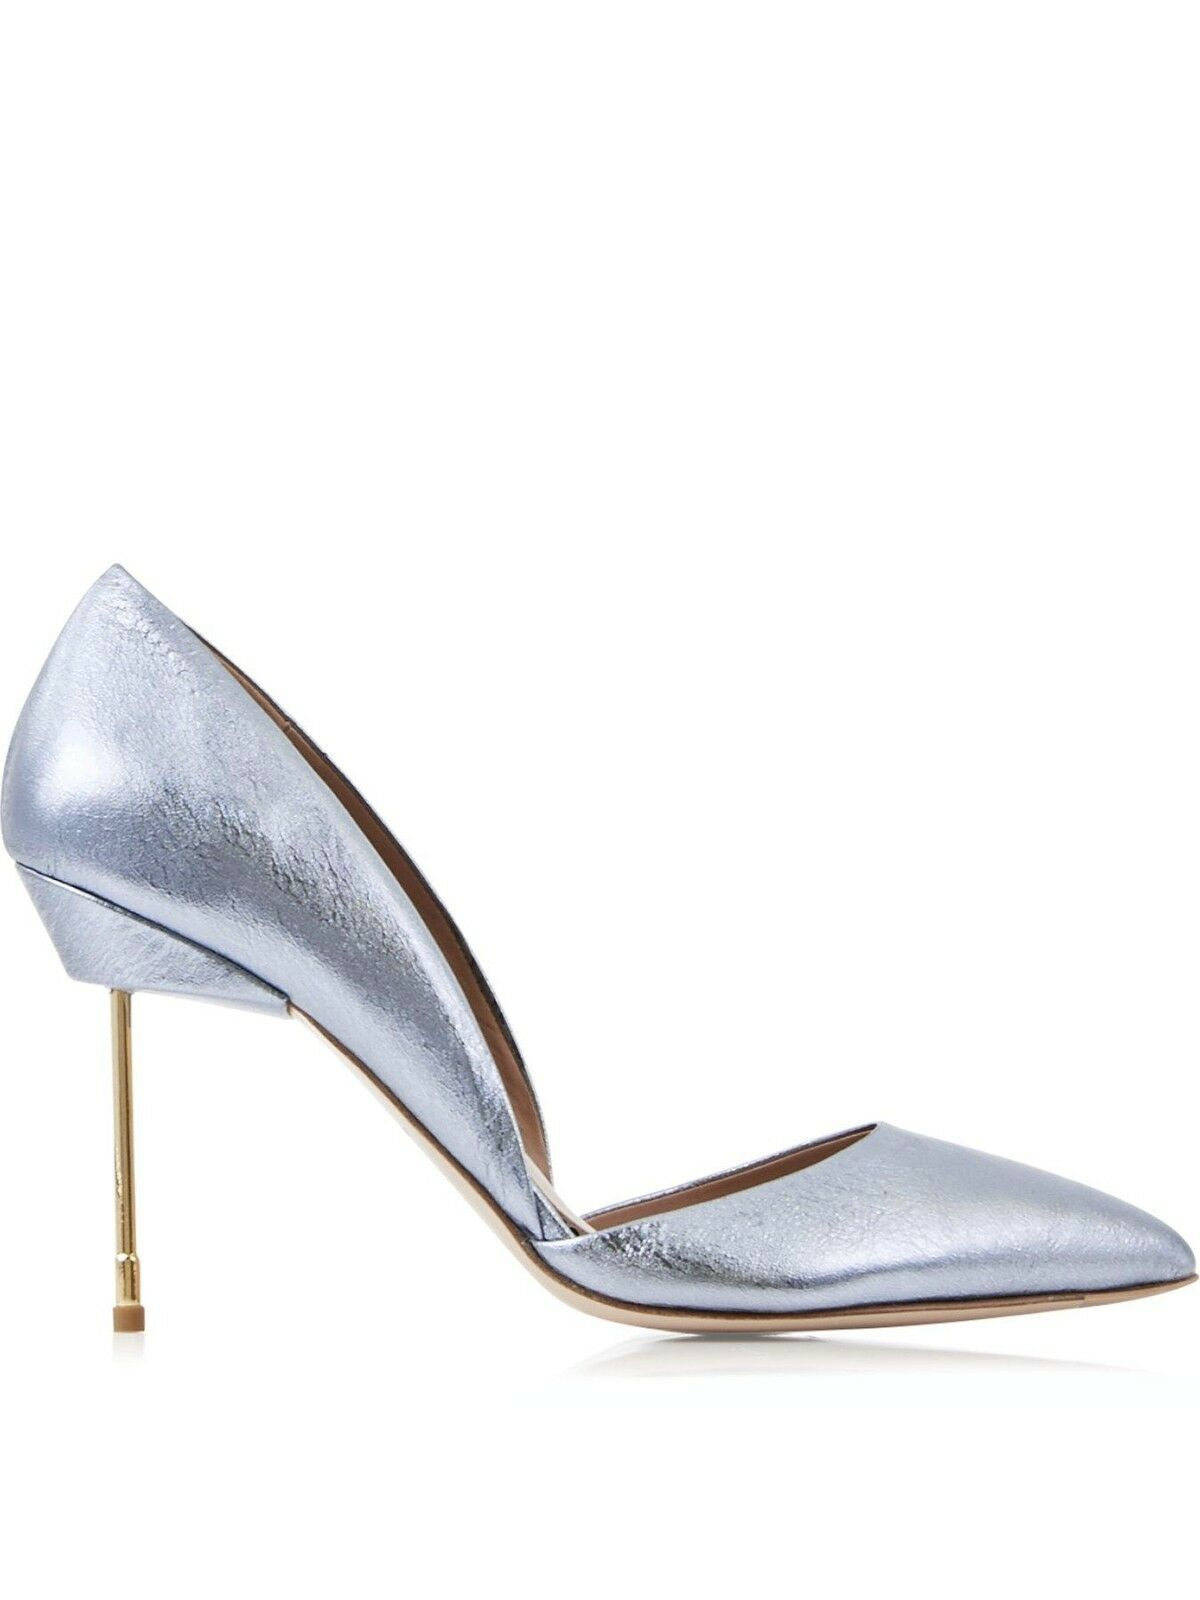 Kurt Geiger London Beaumont Bond schuhes Size 7 40 Metallic blau Court Heels